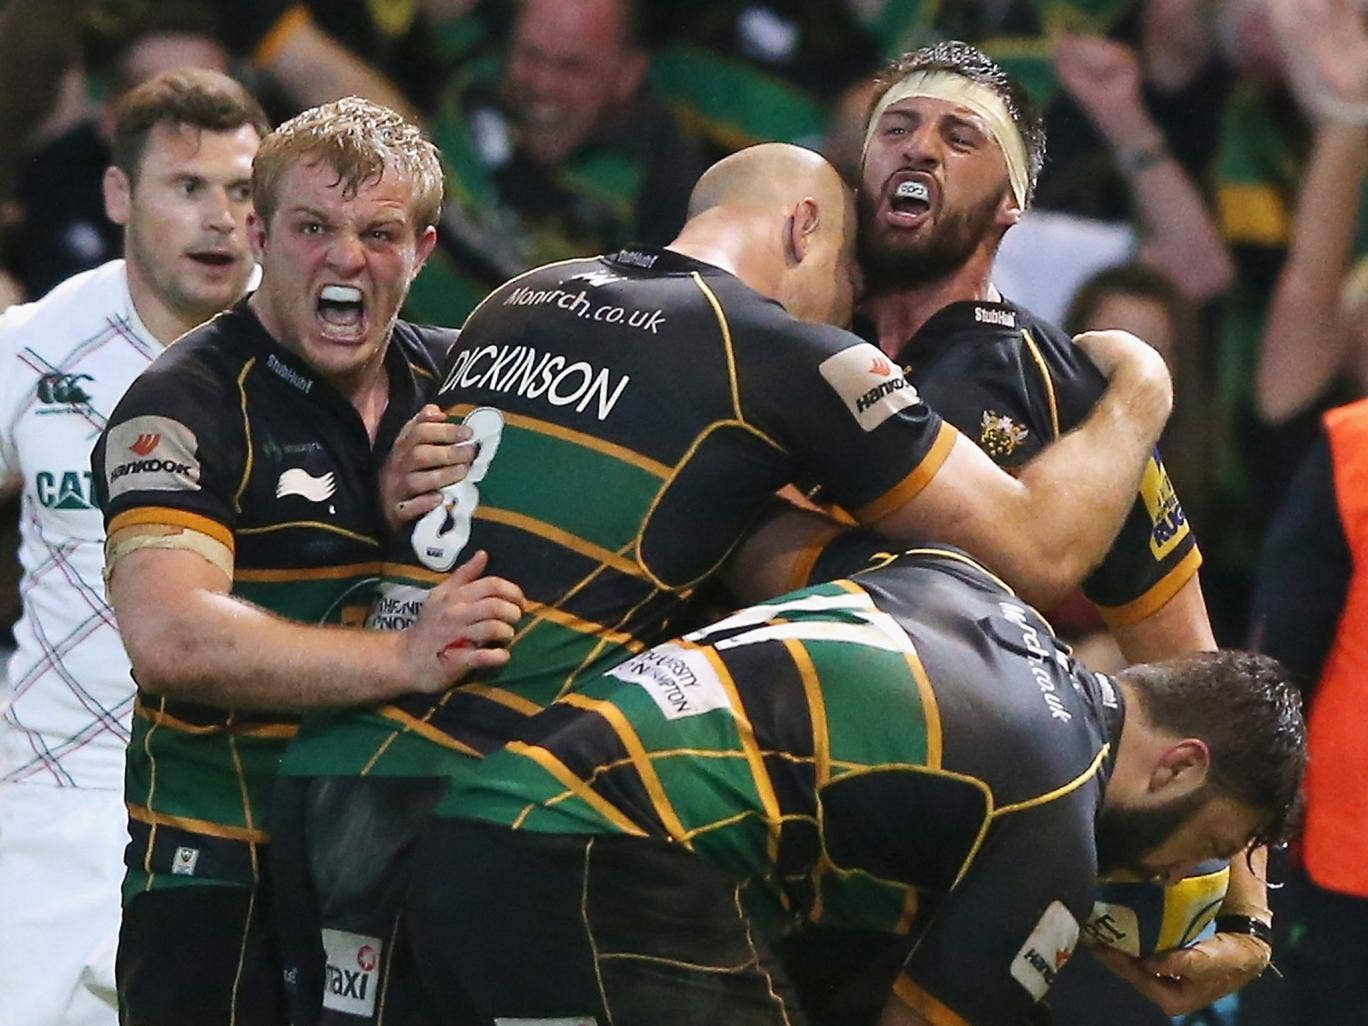 Tom Wood celebrates his match-wining try in Northampton's 21-20 win over Leicester